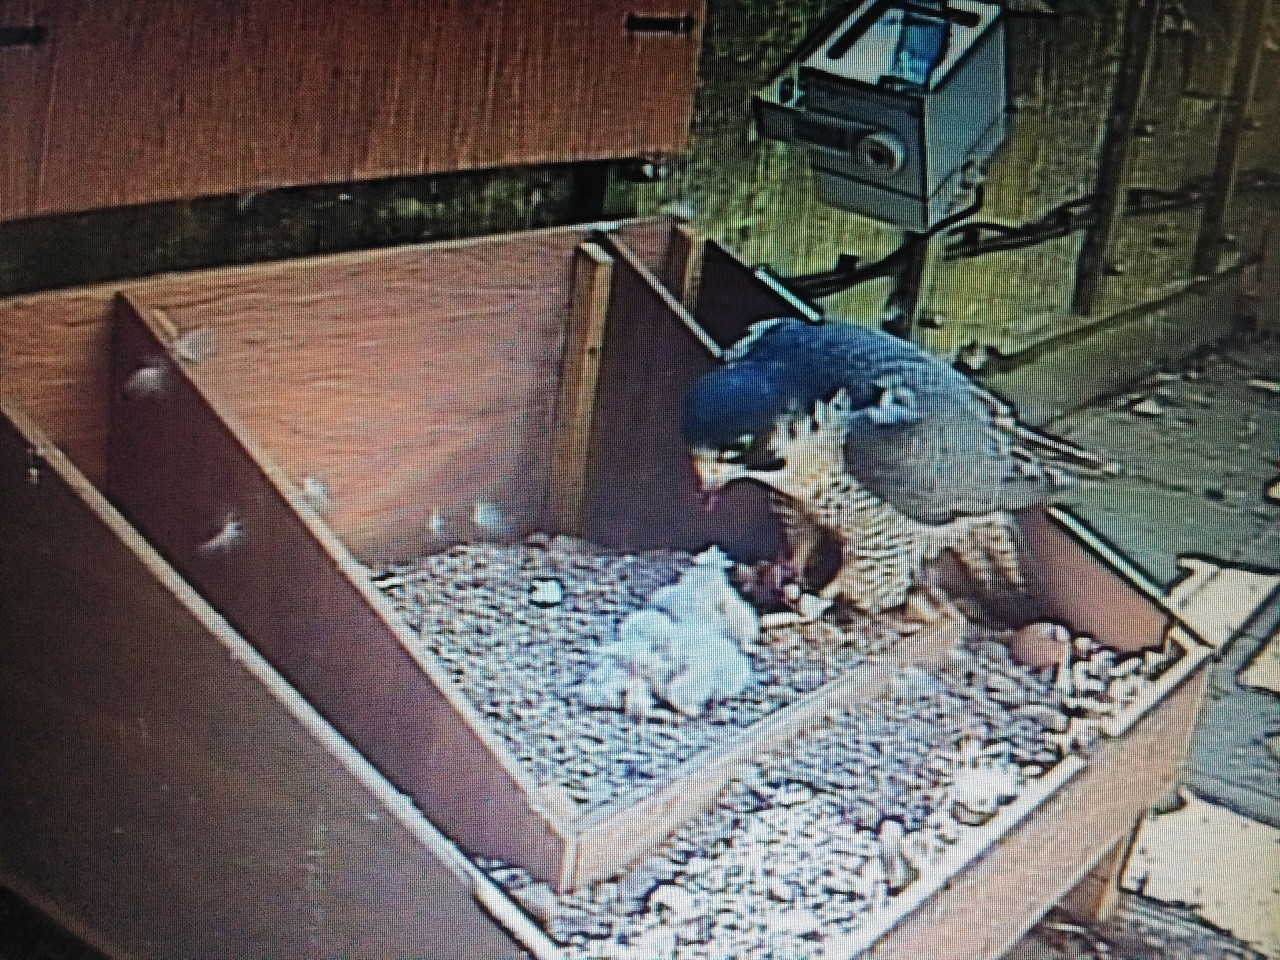 Peregrine falcon chicks with an adult hatched on England's tallest cathedral spire for the first time in more than 60 years in a nesting box installed on Salisbury Cathedral's 403ft spire